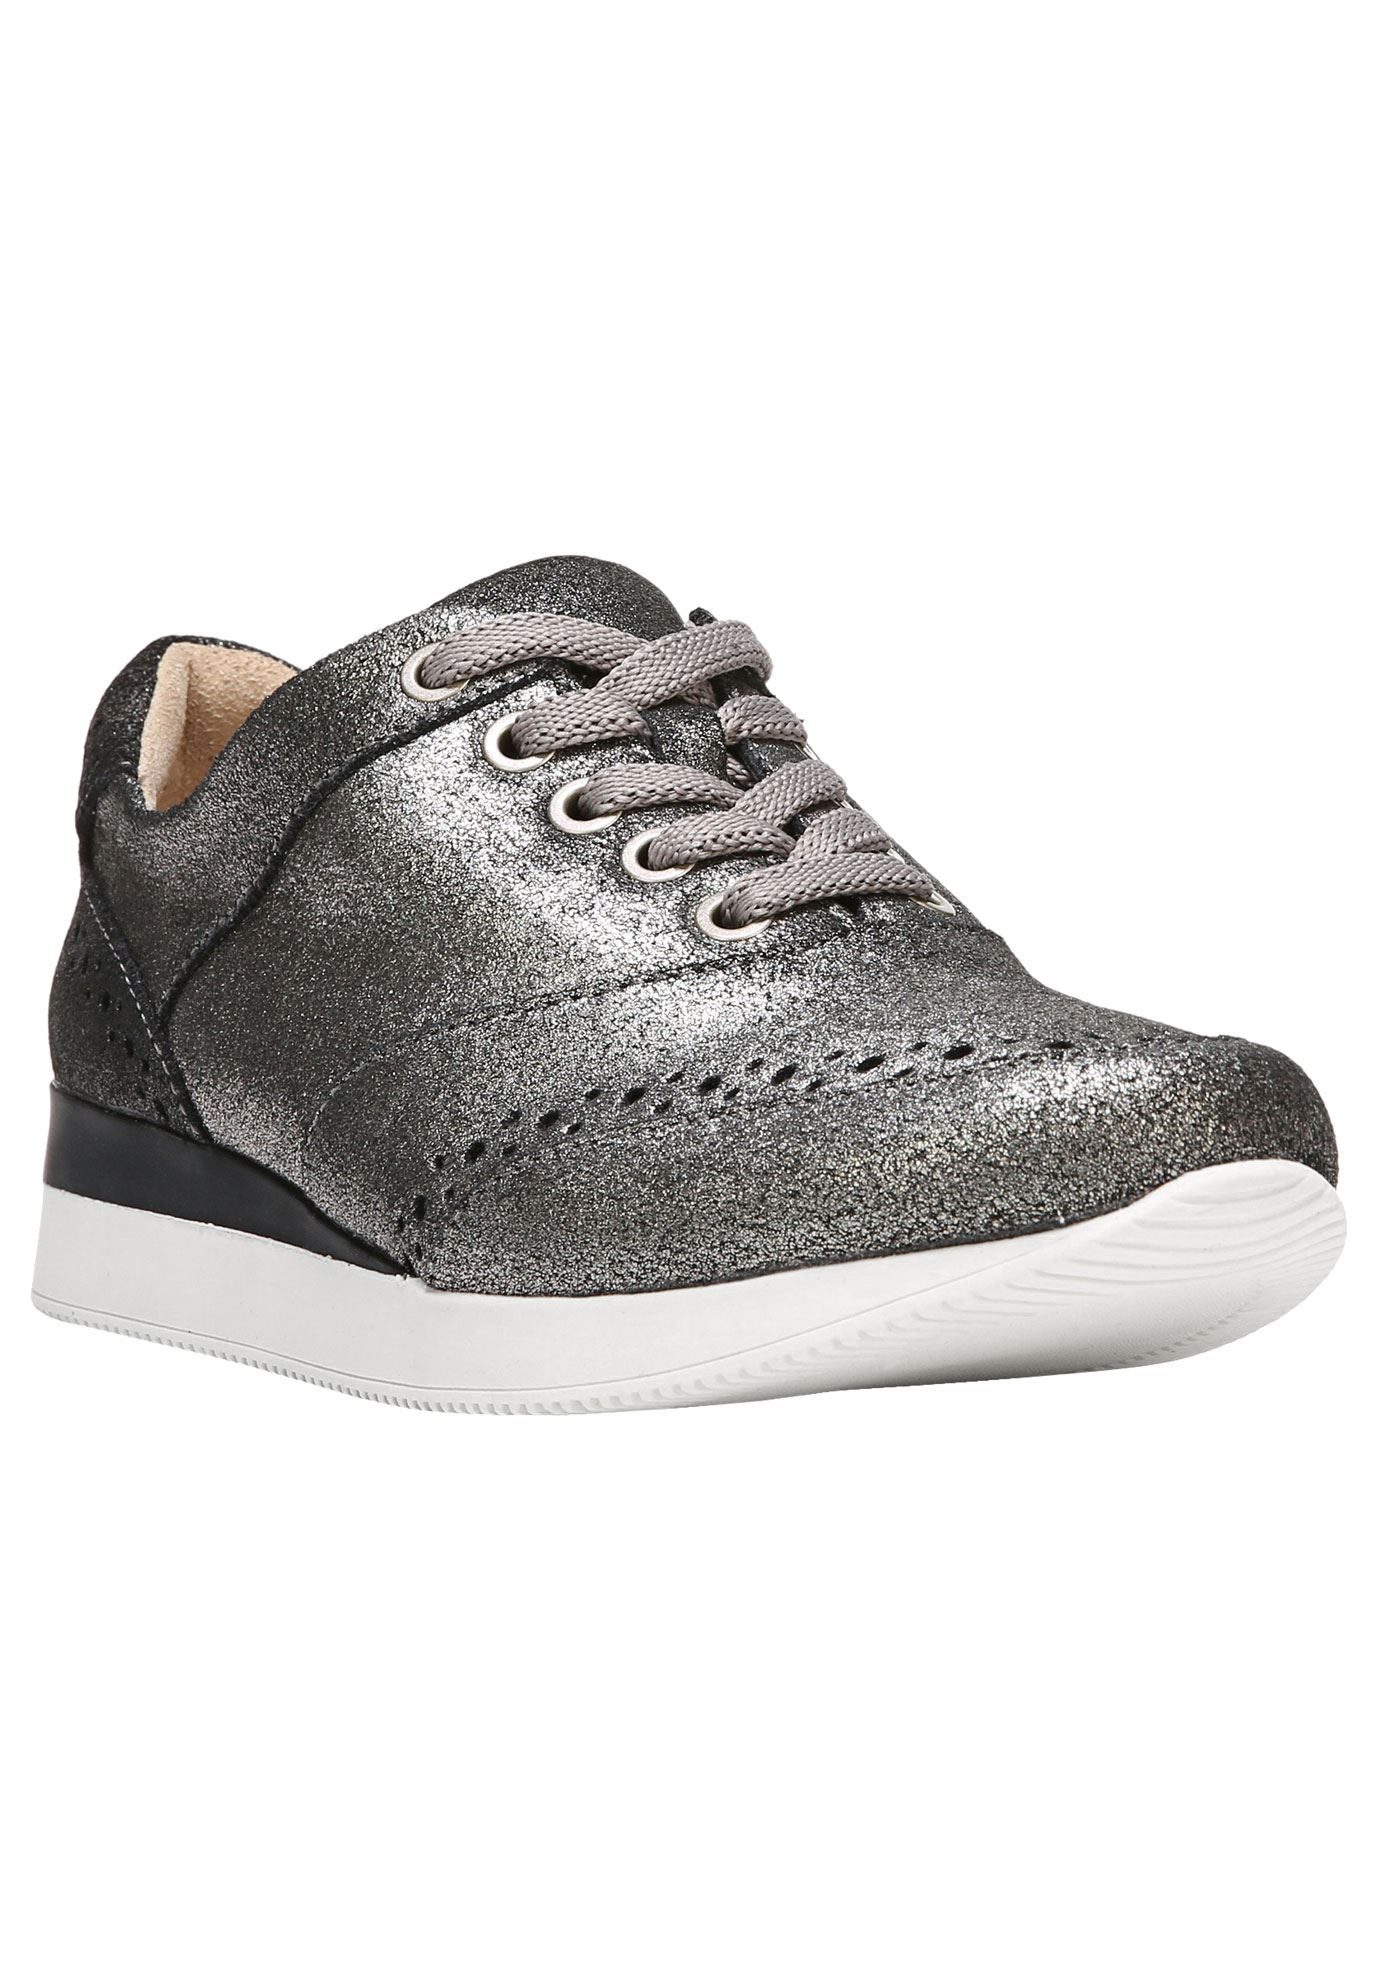 Jimi2 Sneakers by Naturalizer®,